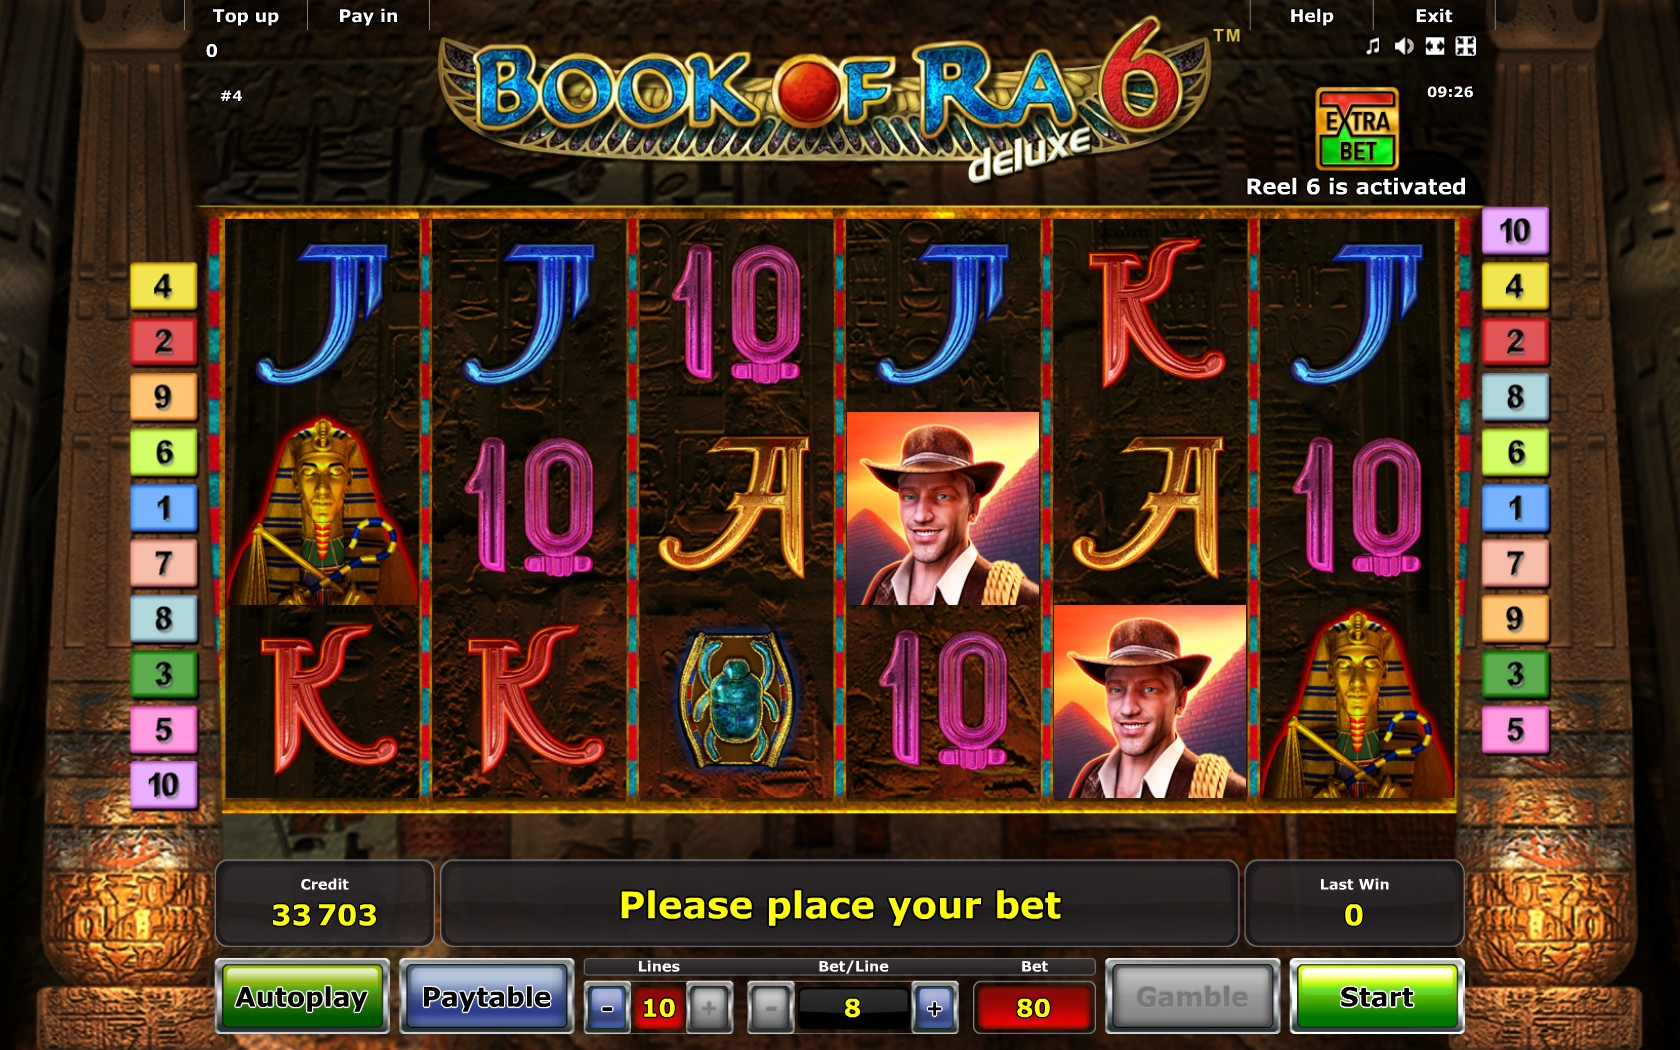 book of ra online casino play book of ra deluxe free